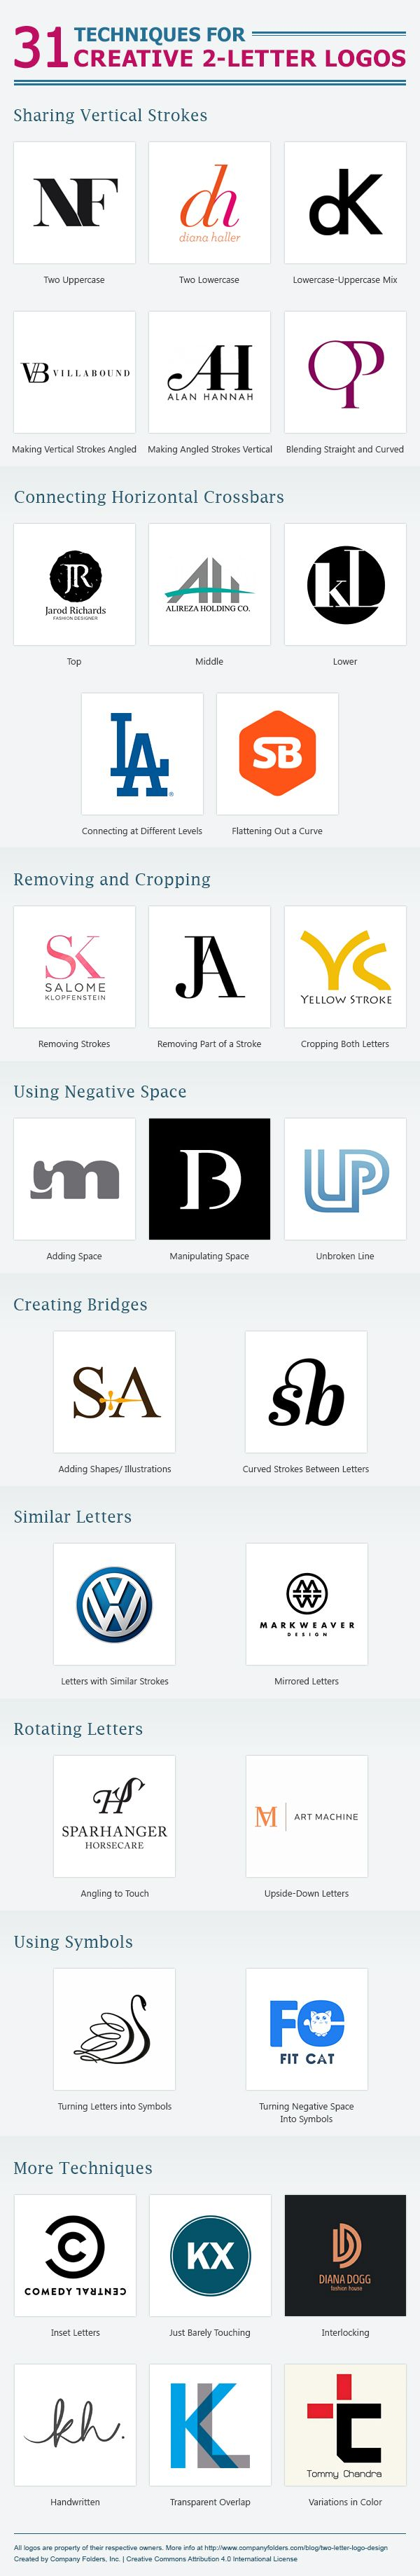 31 Techniques for Creative 2-Letter Logos